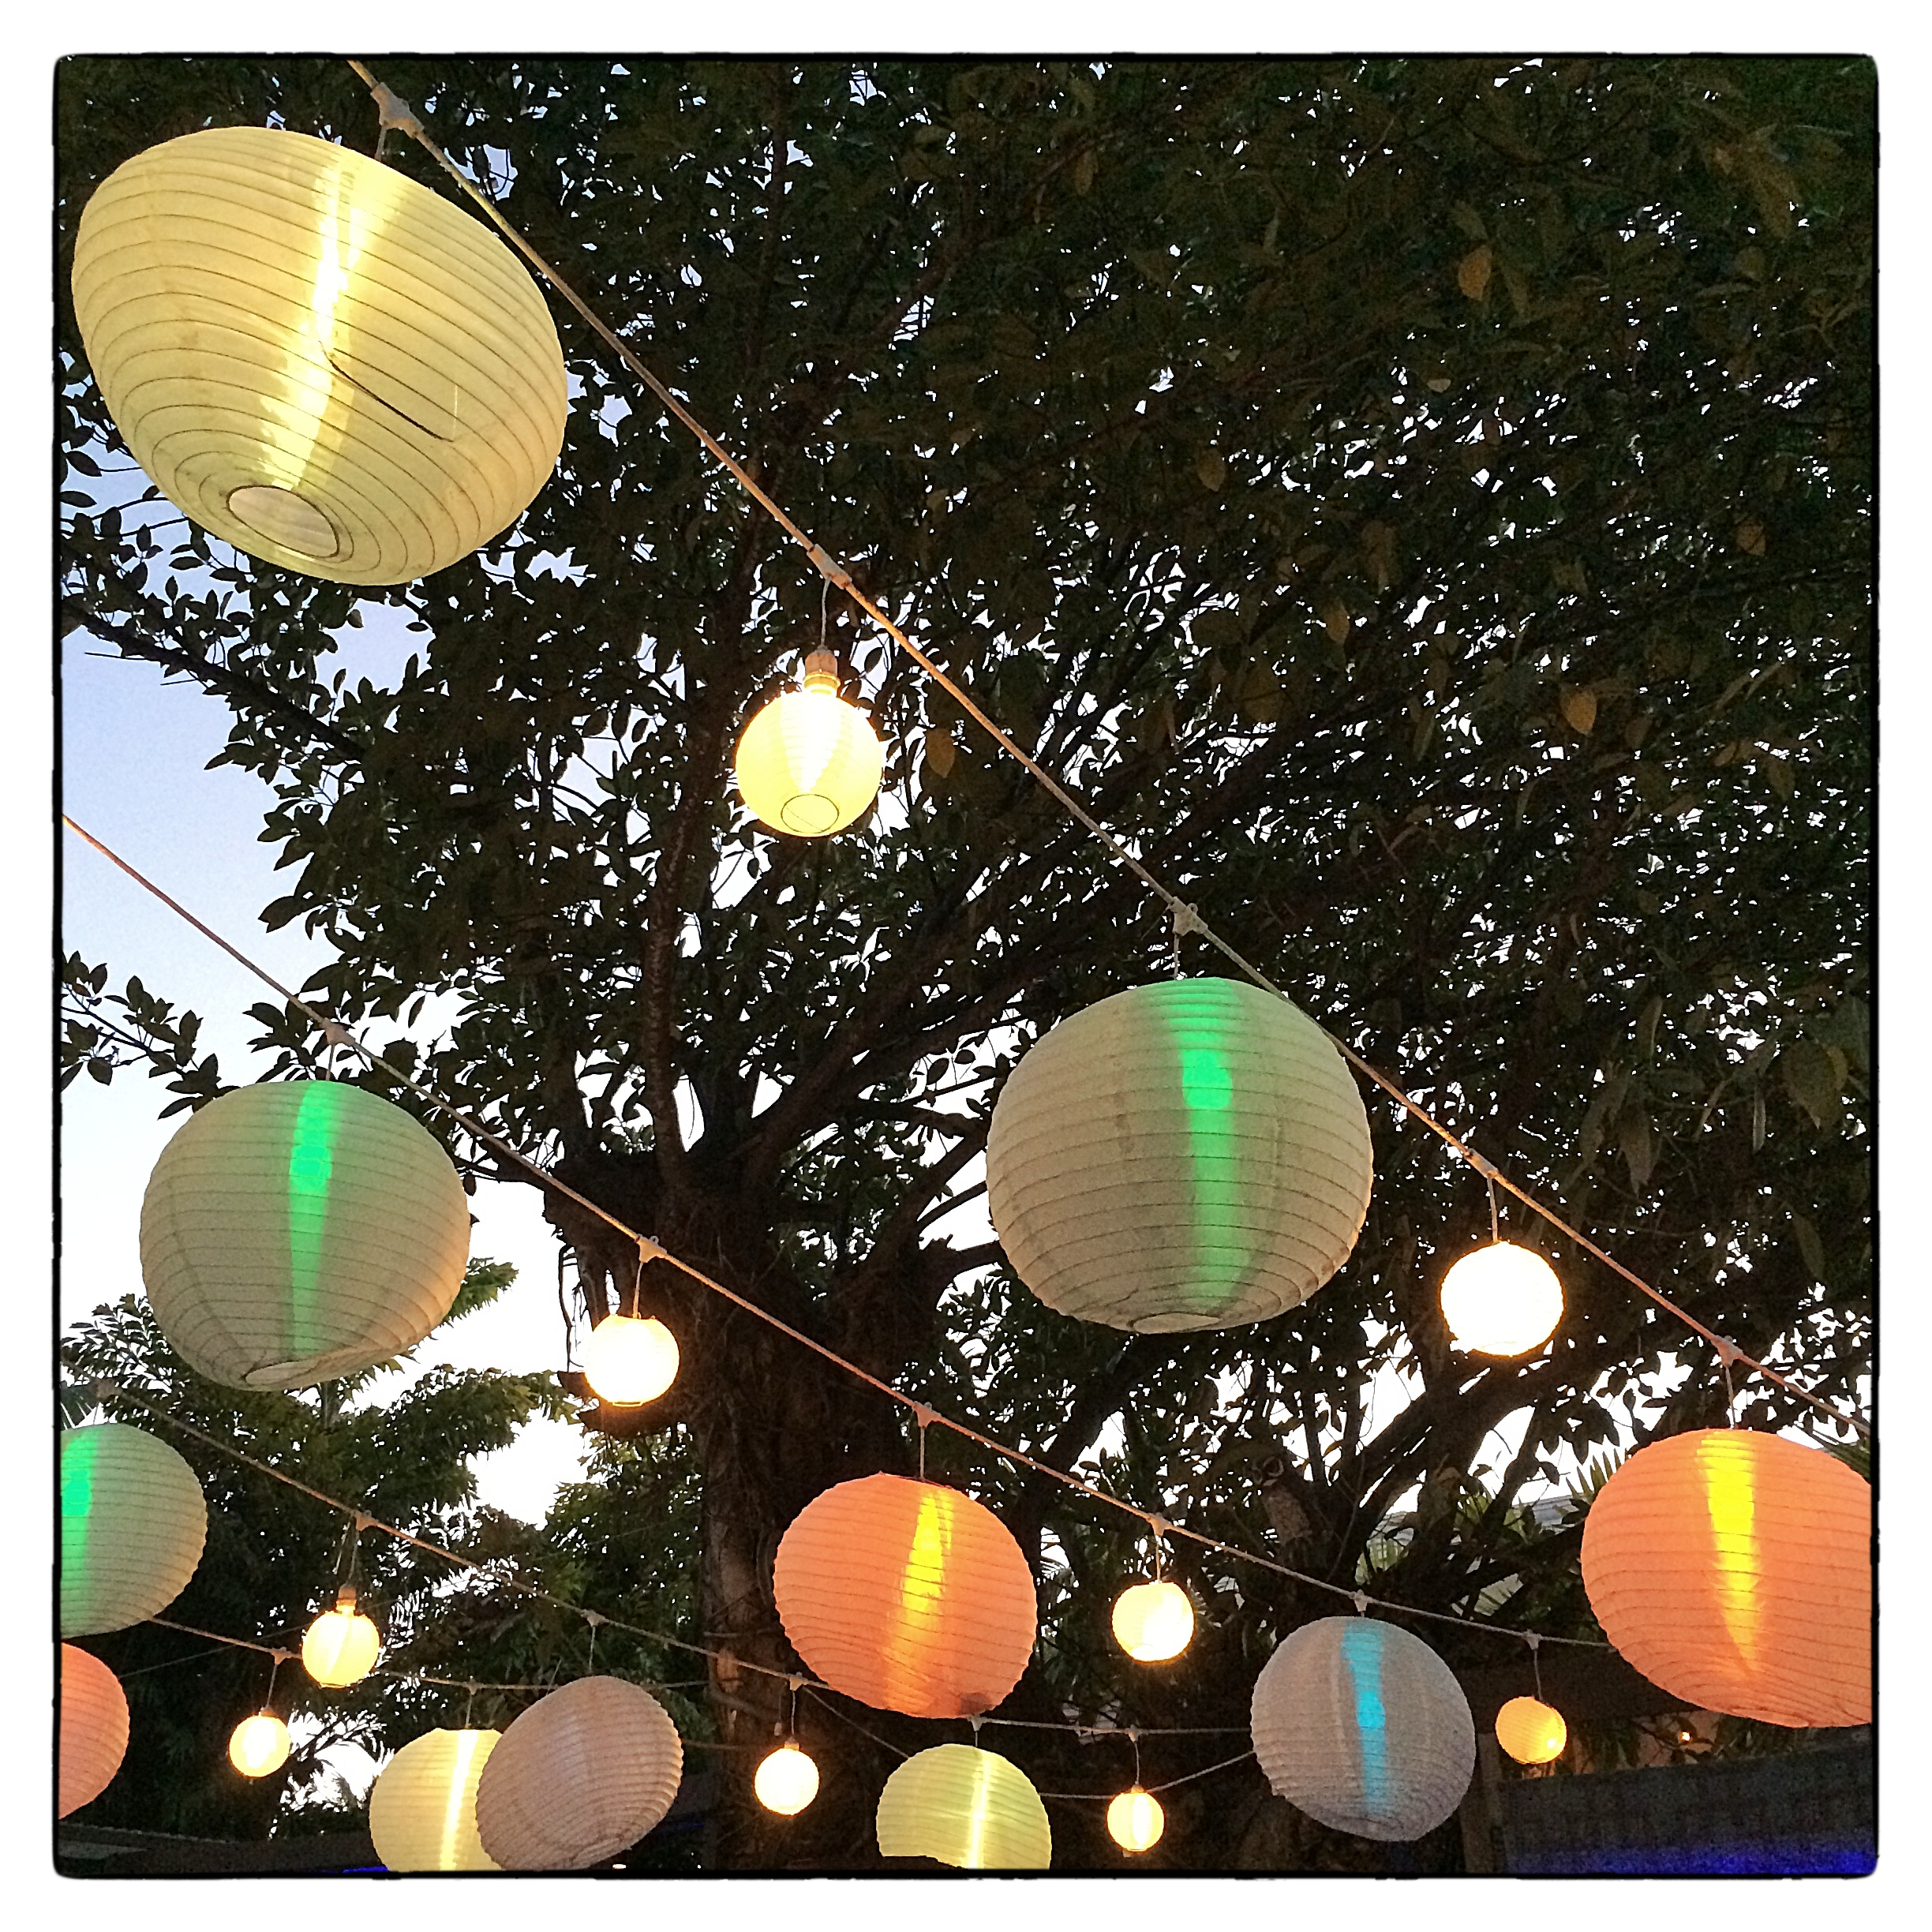 Courtyard dining under lanterns at  Union  in Delray Beach, Fla., shot on March 8, 2014.